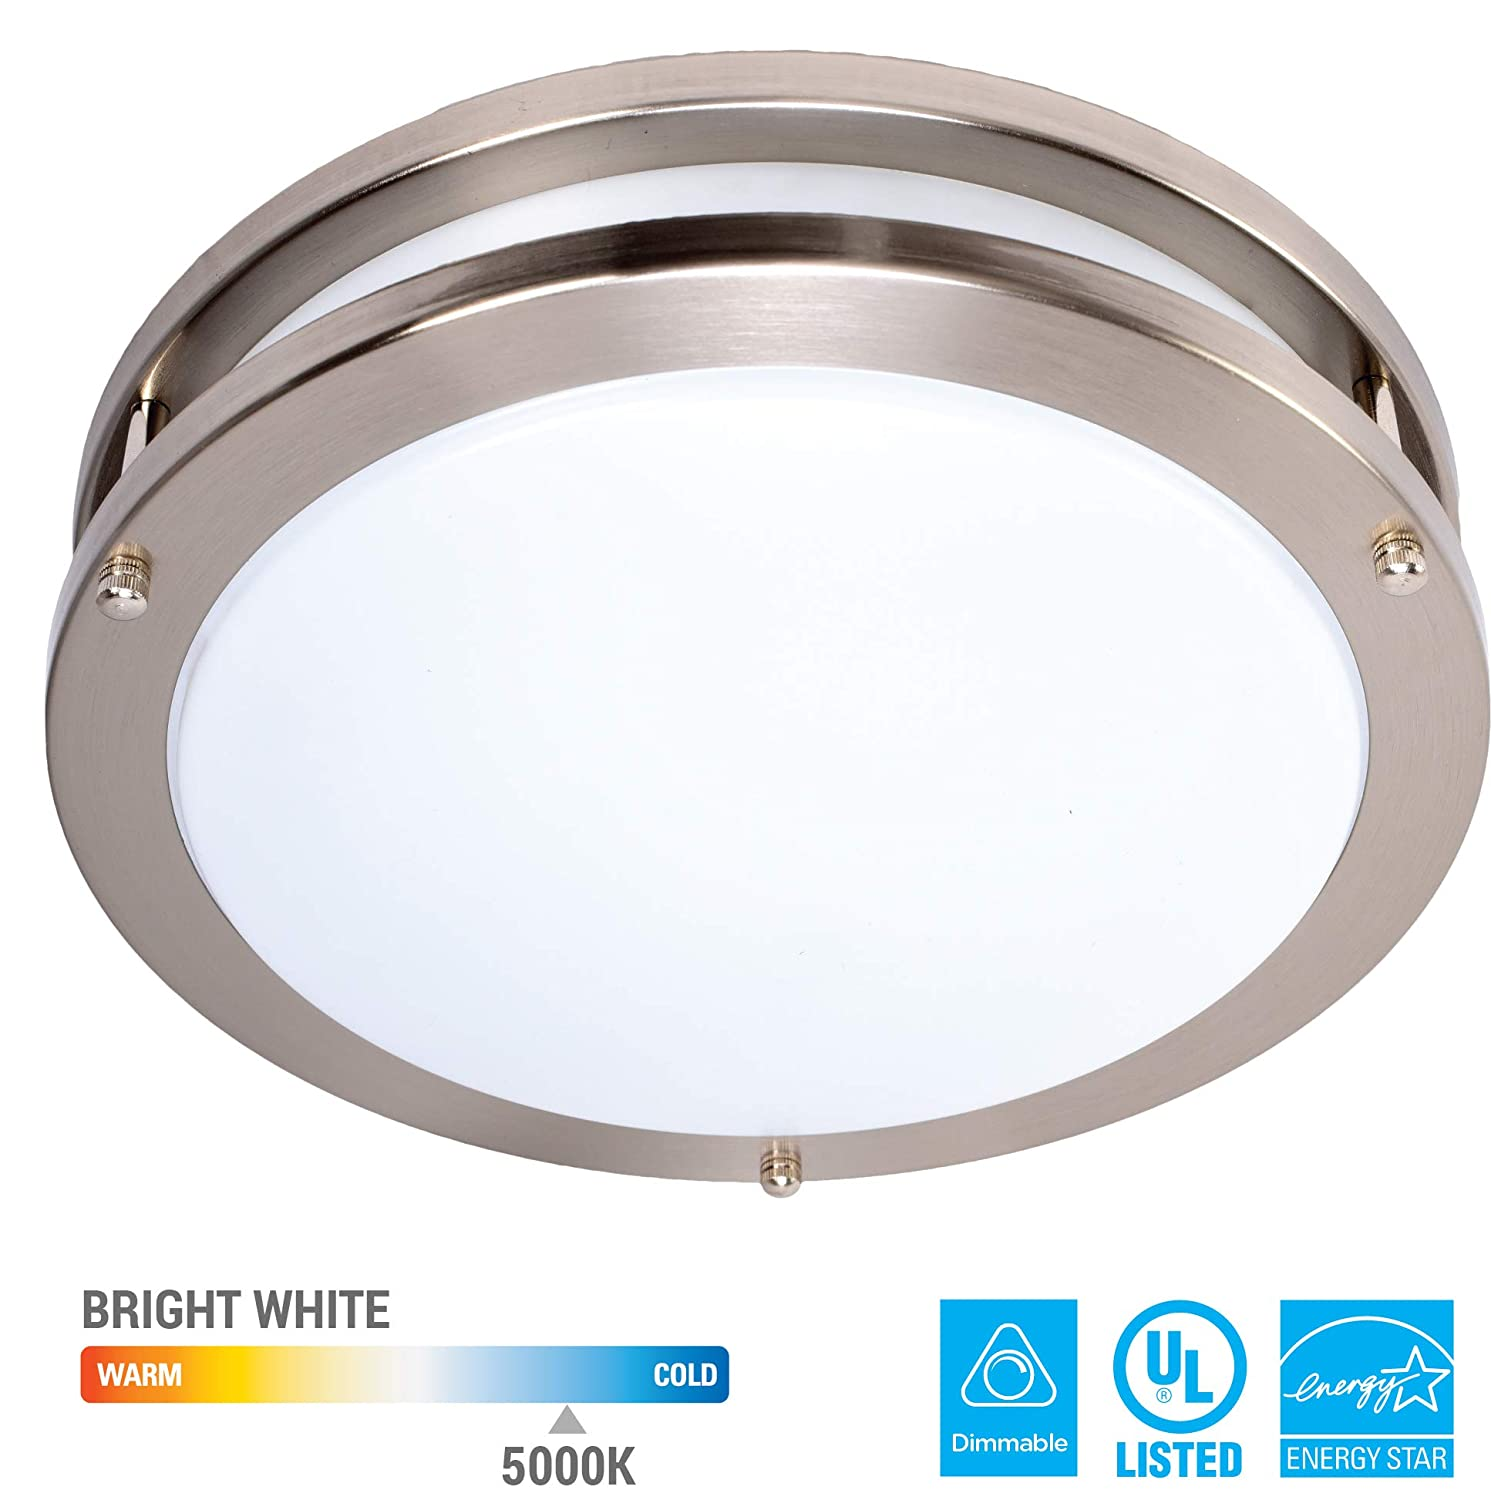 Kor 14 inch led ceiling light fixture 21w 1500lm 5000k bright white color dimmable light energy efficient and easy installation ideal for living